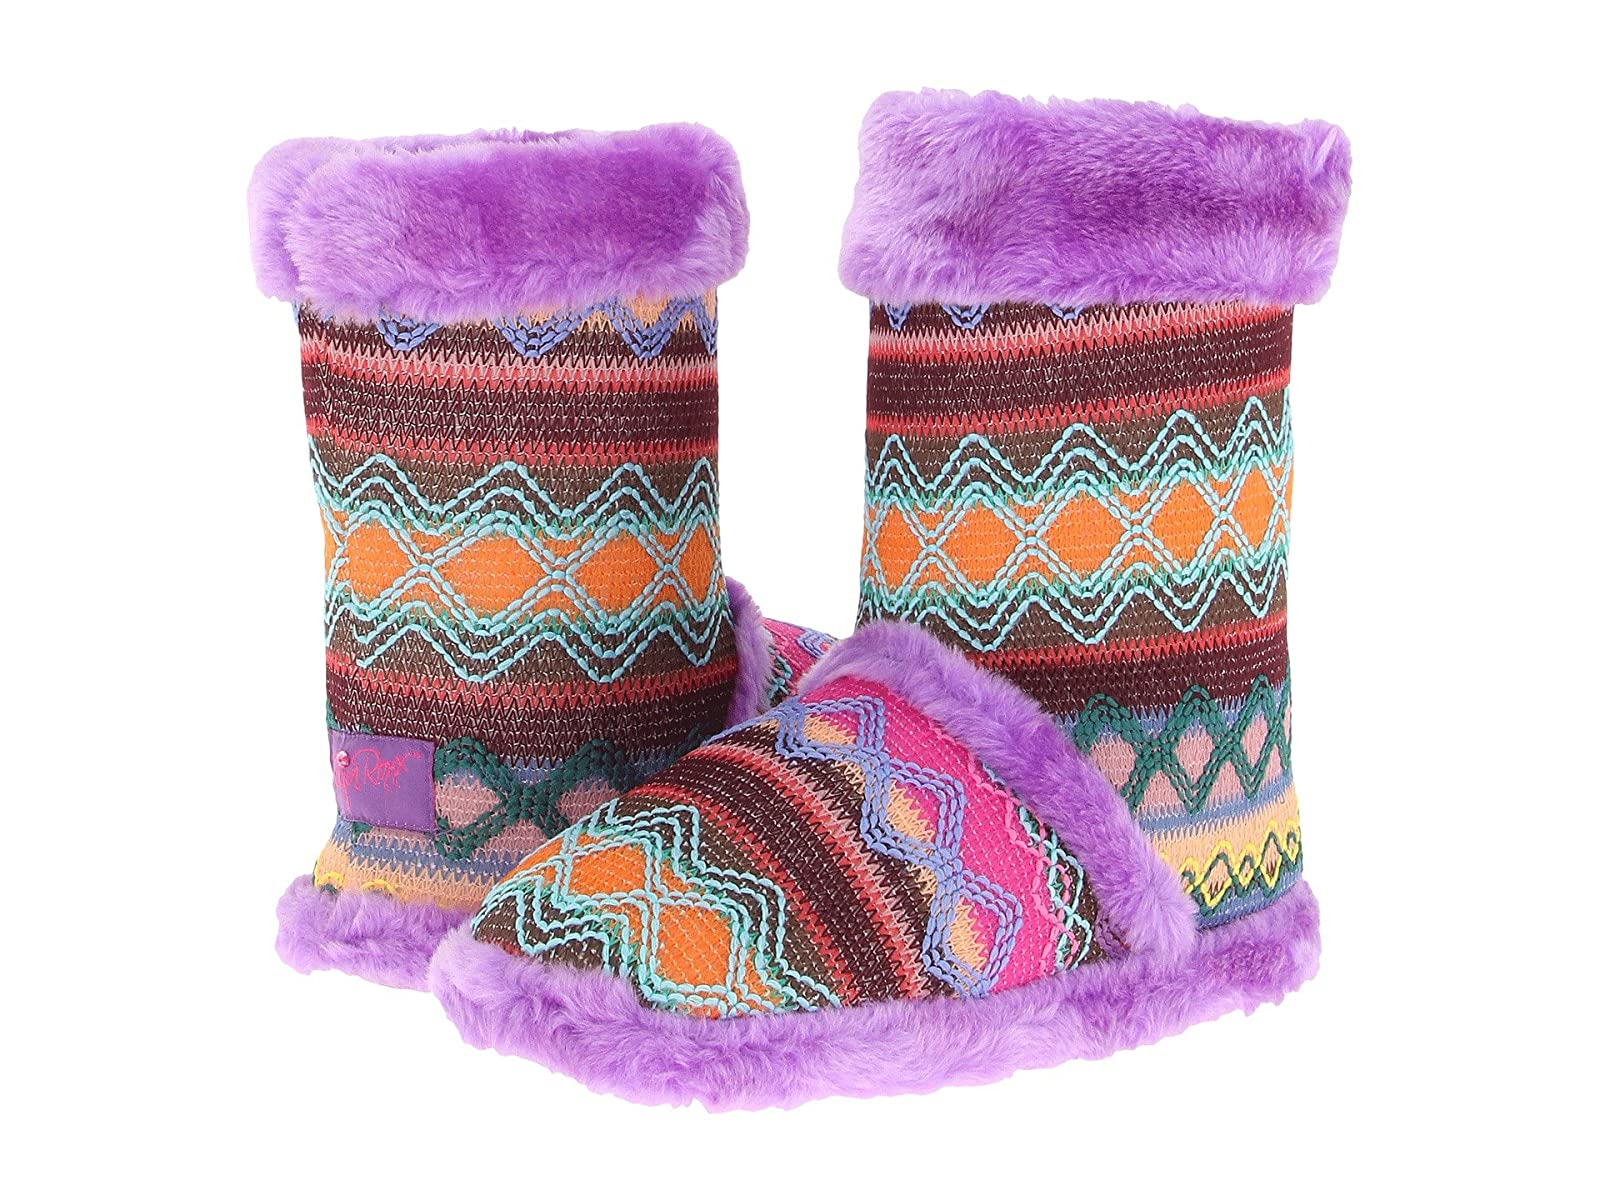 M&F Western Knit Print Bootie SlippersAtmospheric grades have affordable shoes